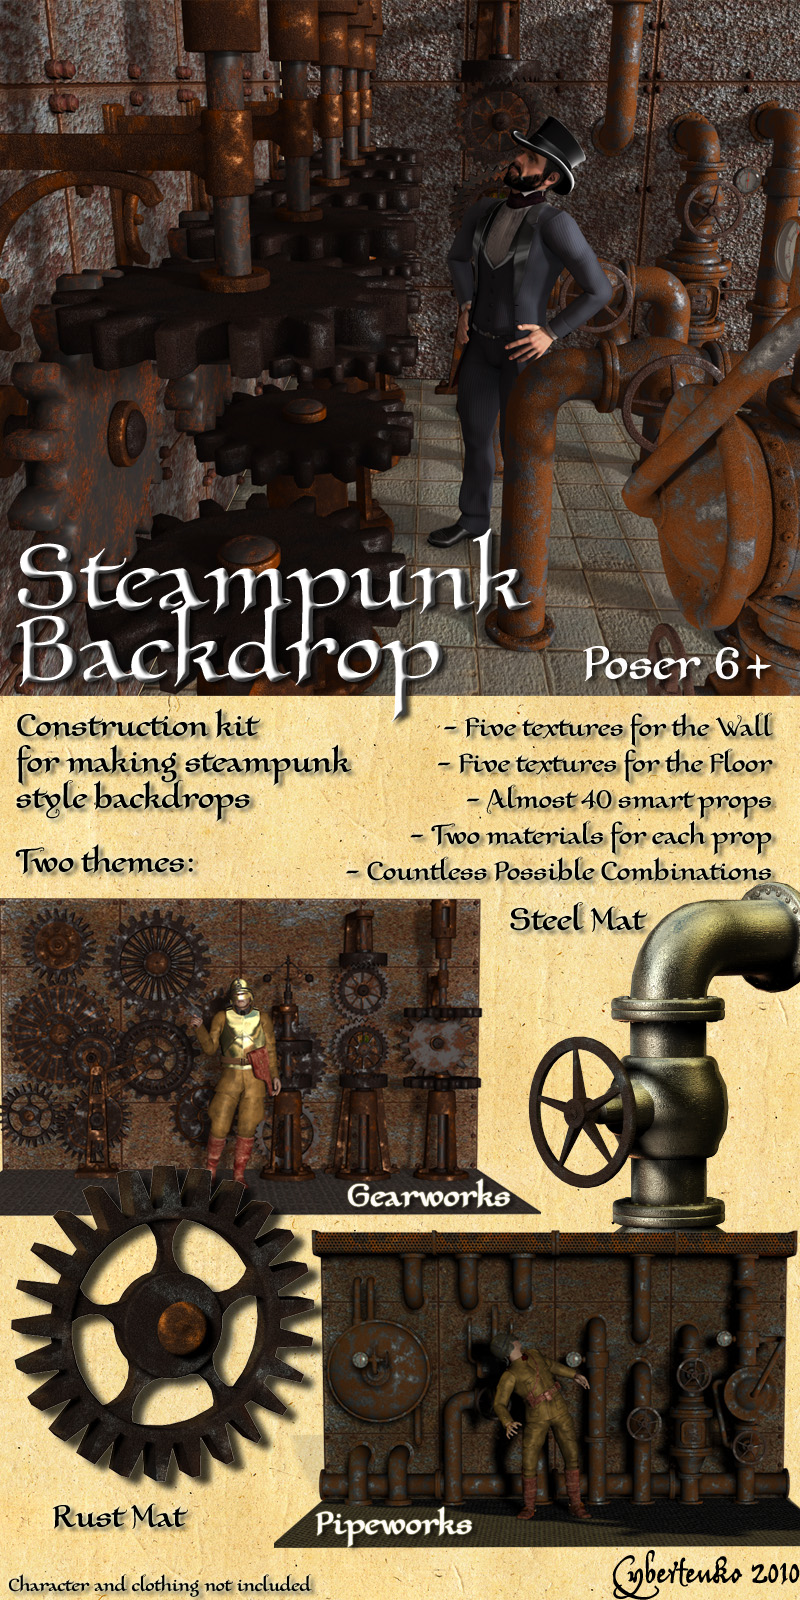 Steampunk Backdrop